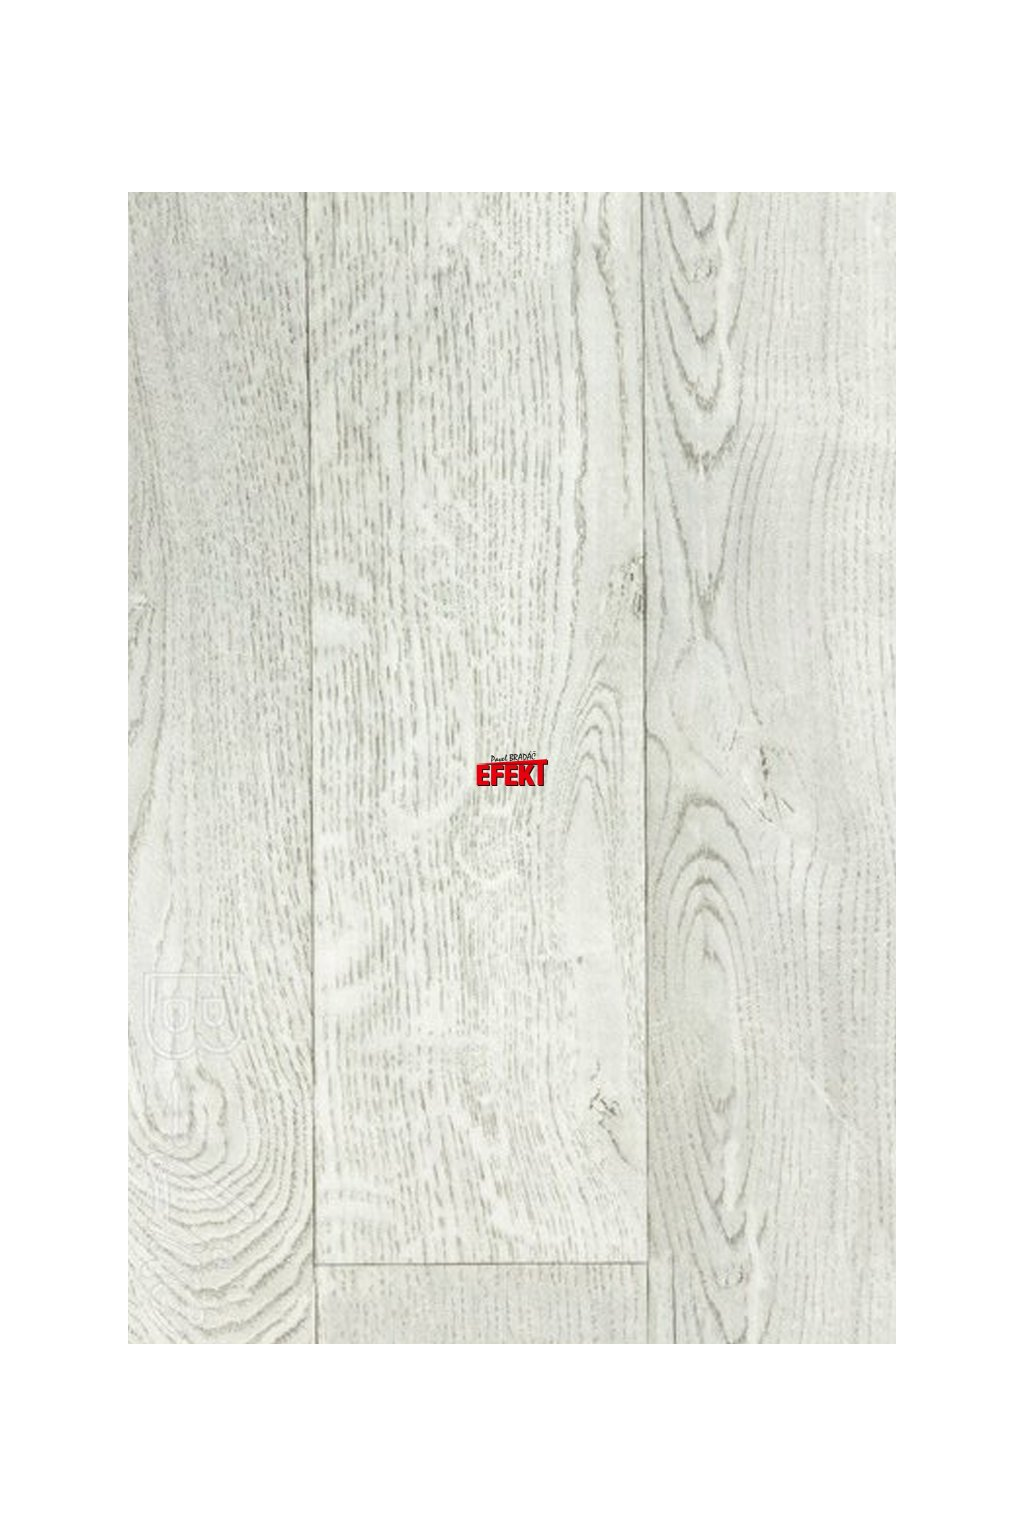 Blacktex White Oak 979L